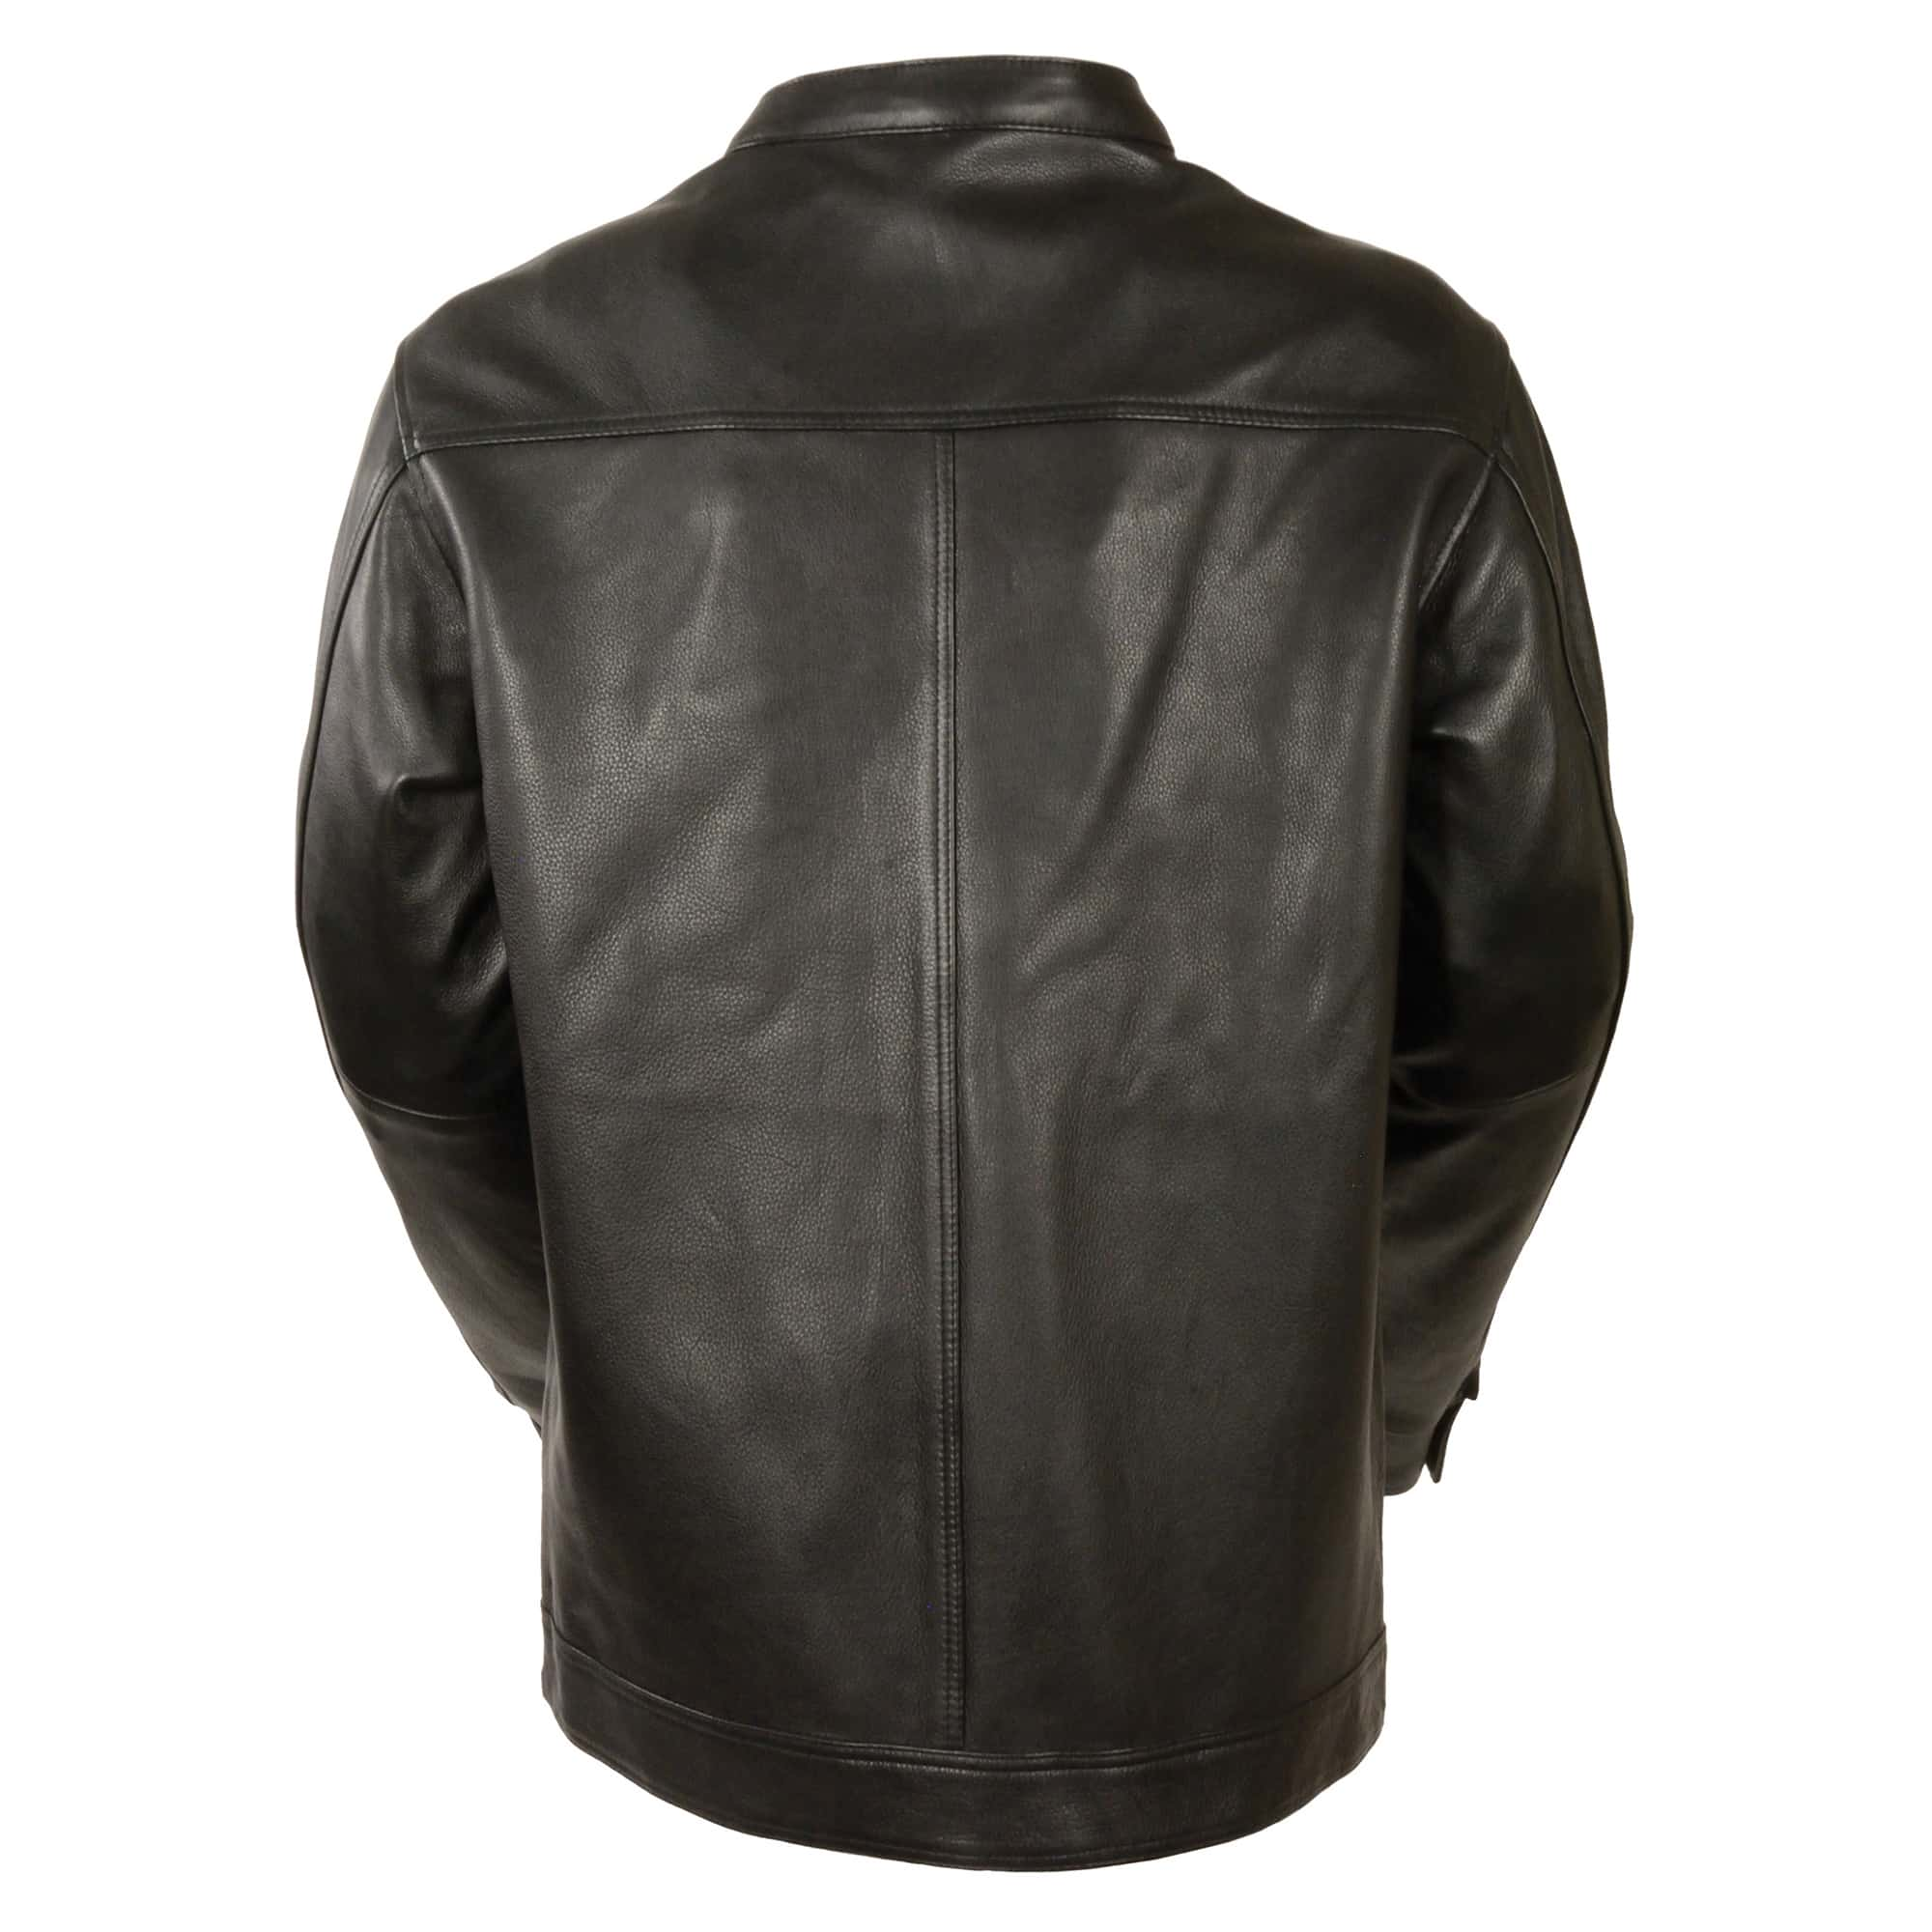 9c1efb301 Men's Club Style Cut Zipper/Snap Front Shirt Jacket – Milwaukeee Leather